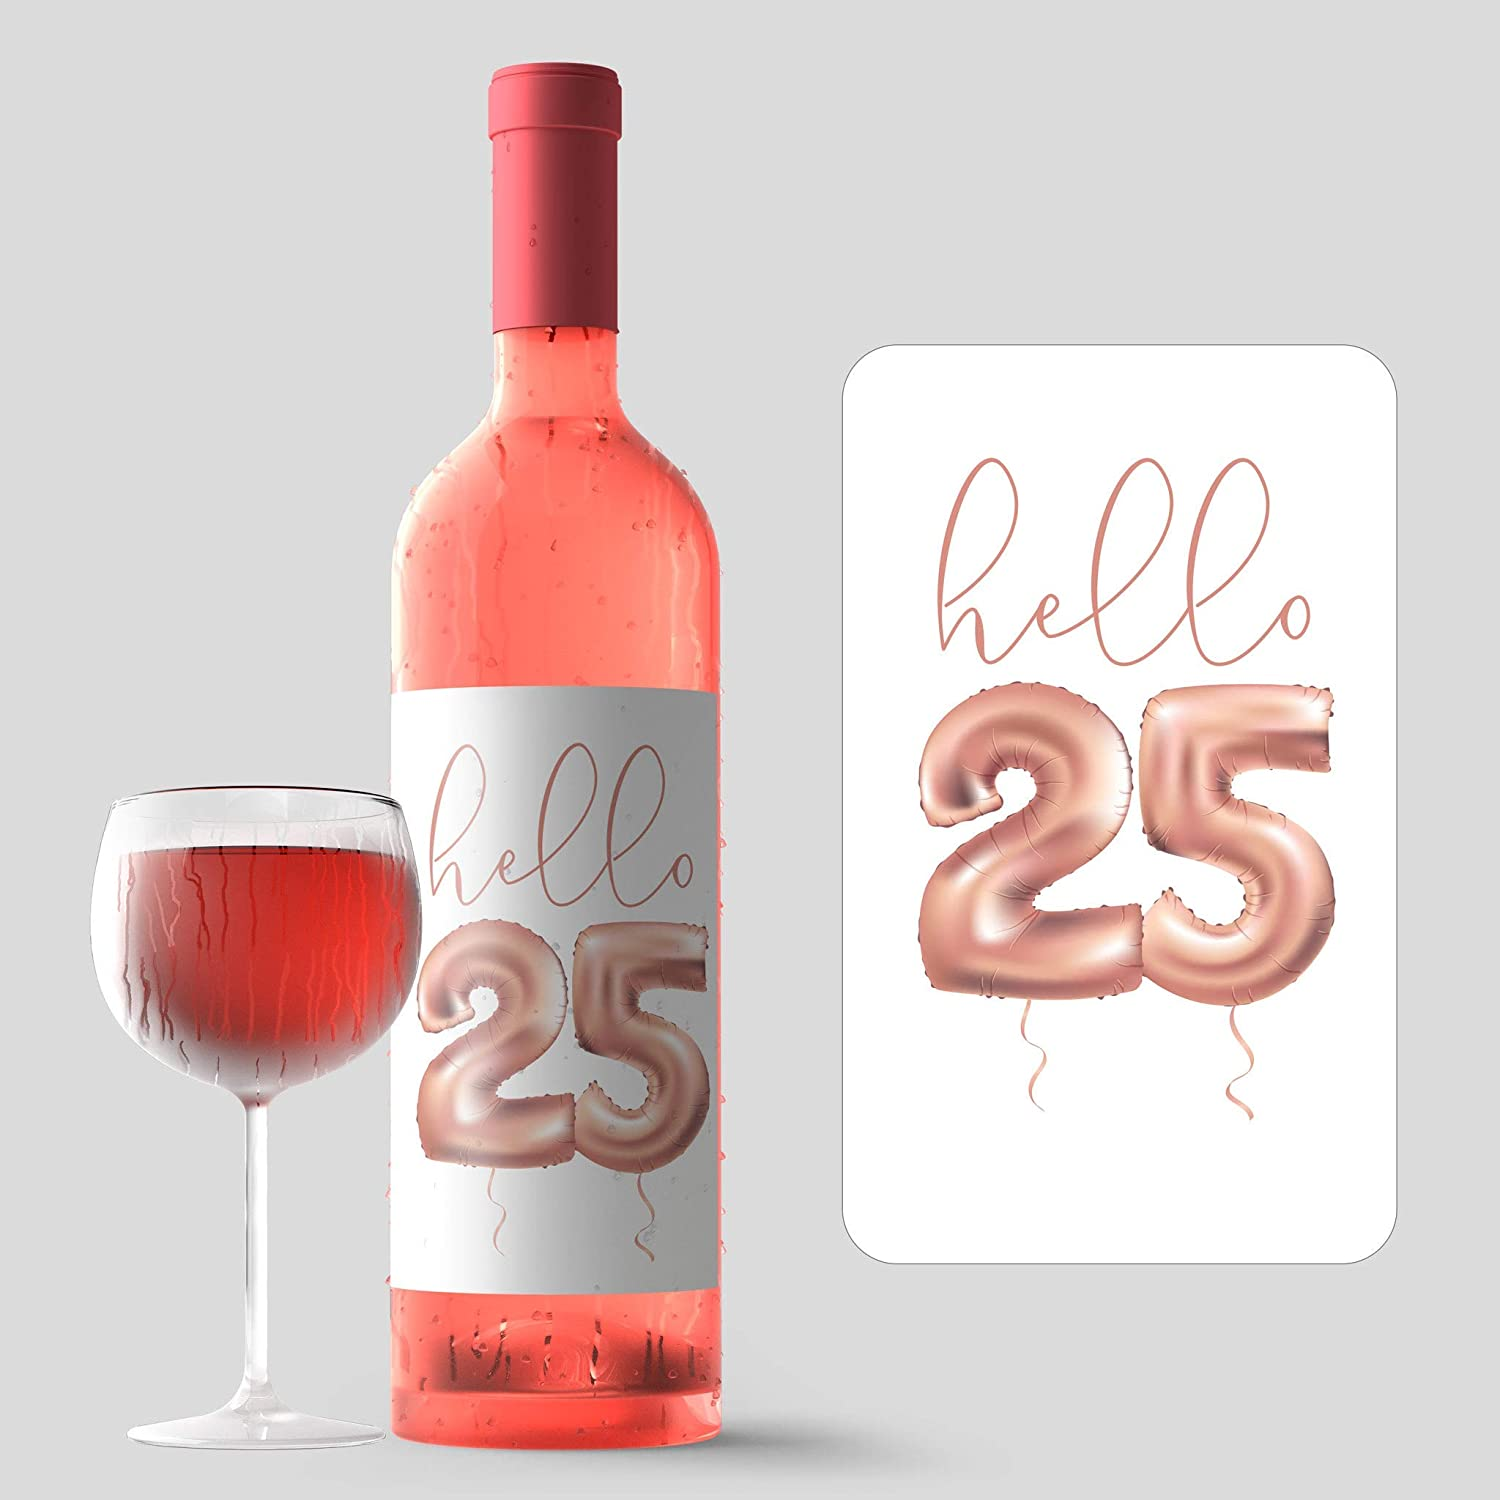 Merry Christmas Vinyl Decal Stickers Wine Glass Bottle 6 10 Set Rose Gold